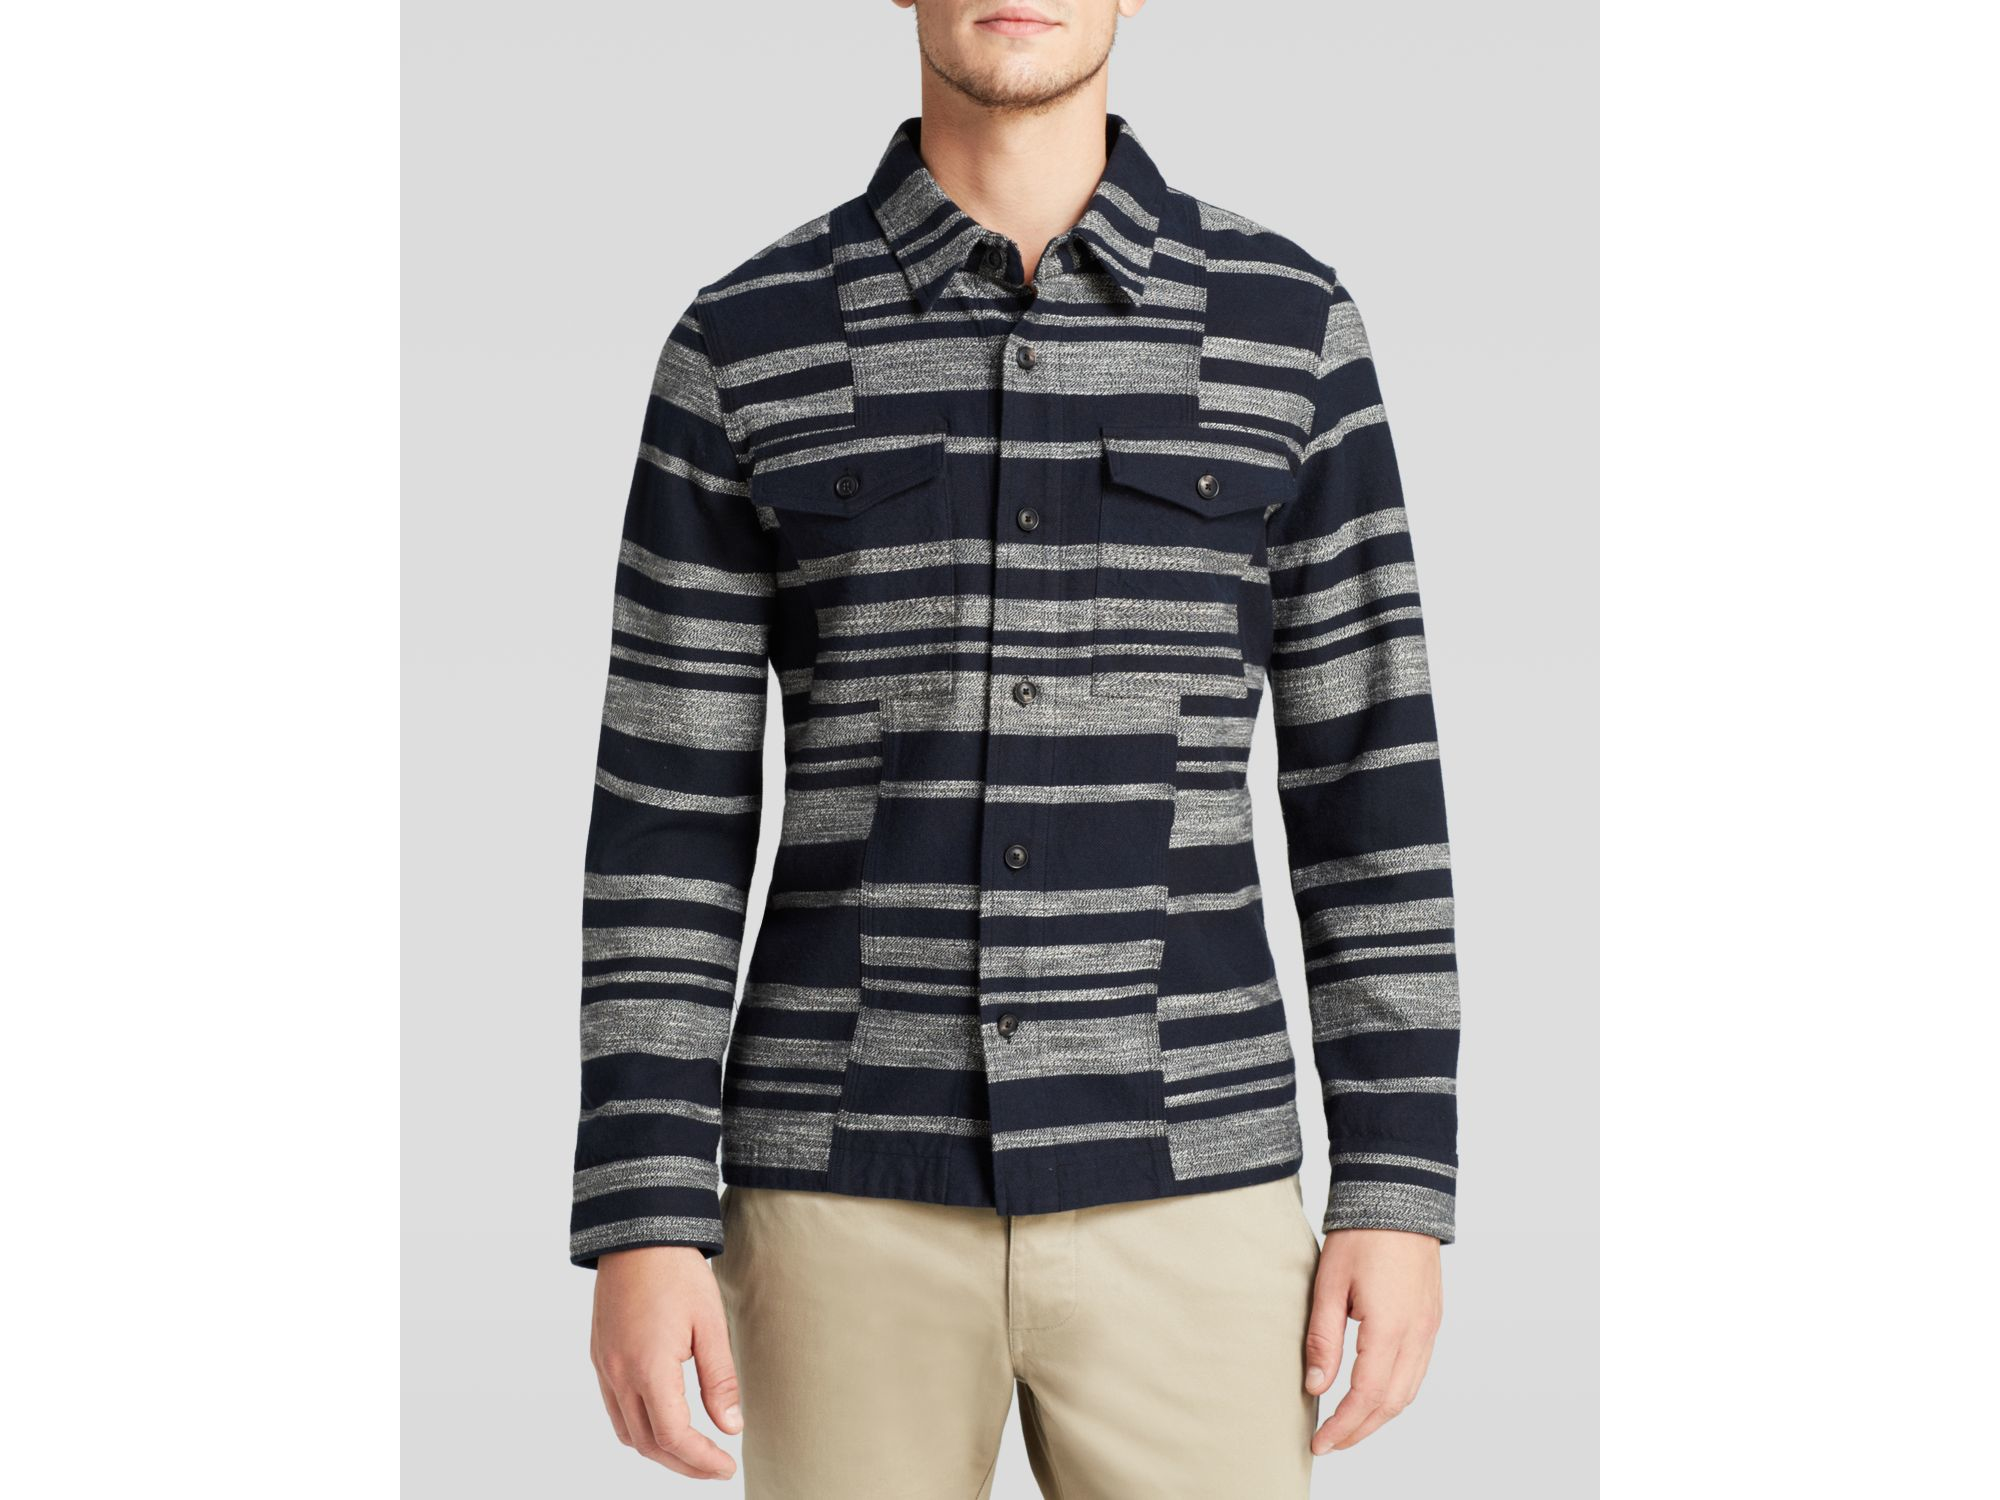 Wings + Horns Dusk Stripe Shirt Jacket in Navy/Grey (Blue) for Men